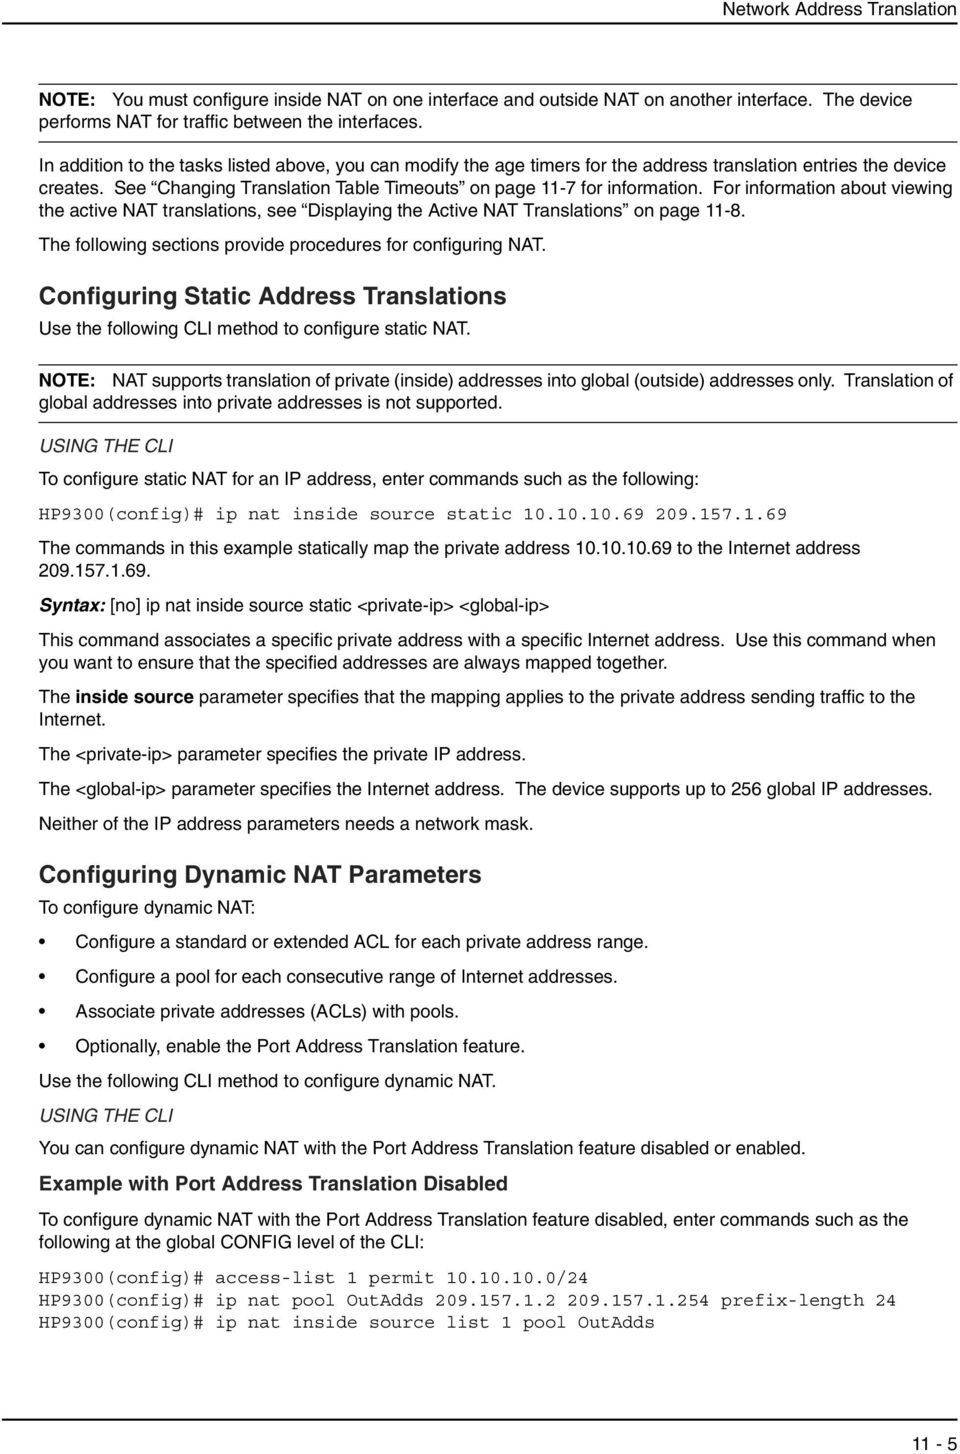 For information about viewing the active NAT translations, see Displaying the Active NAT Translations on page 11-8. The following sections provide procedures for configuring NAT.